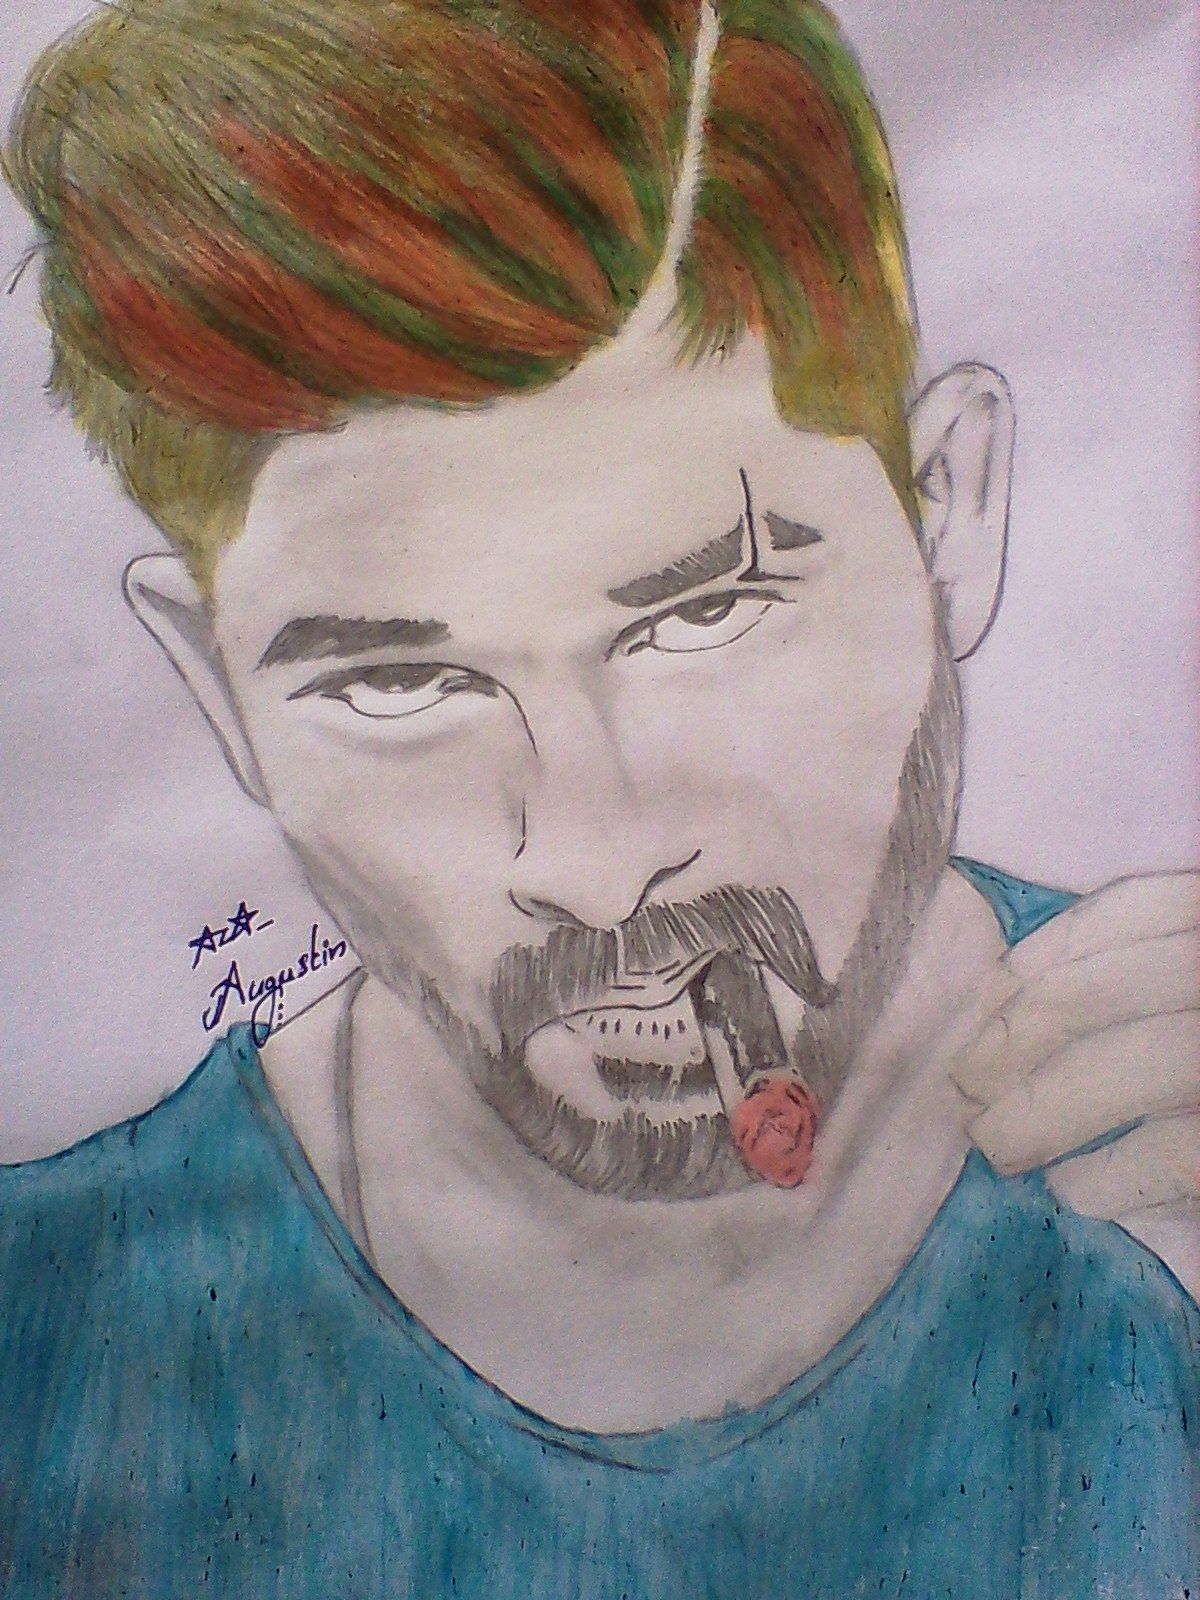 Allu Arjun Pencil Sketch Portrait Marvel Drawings Pencil Pencil Art Drawings